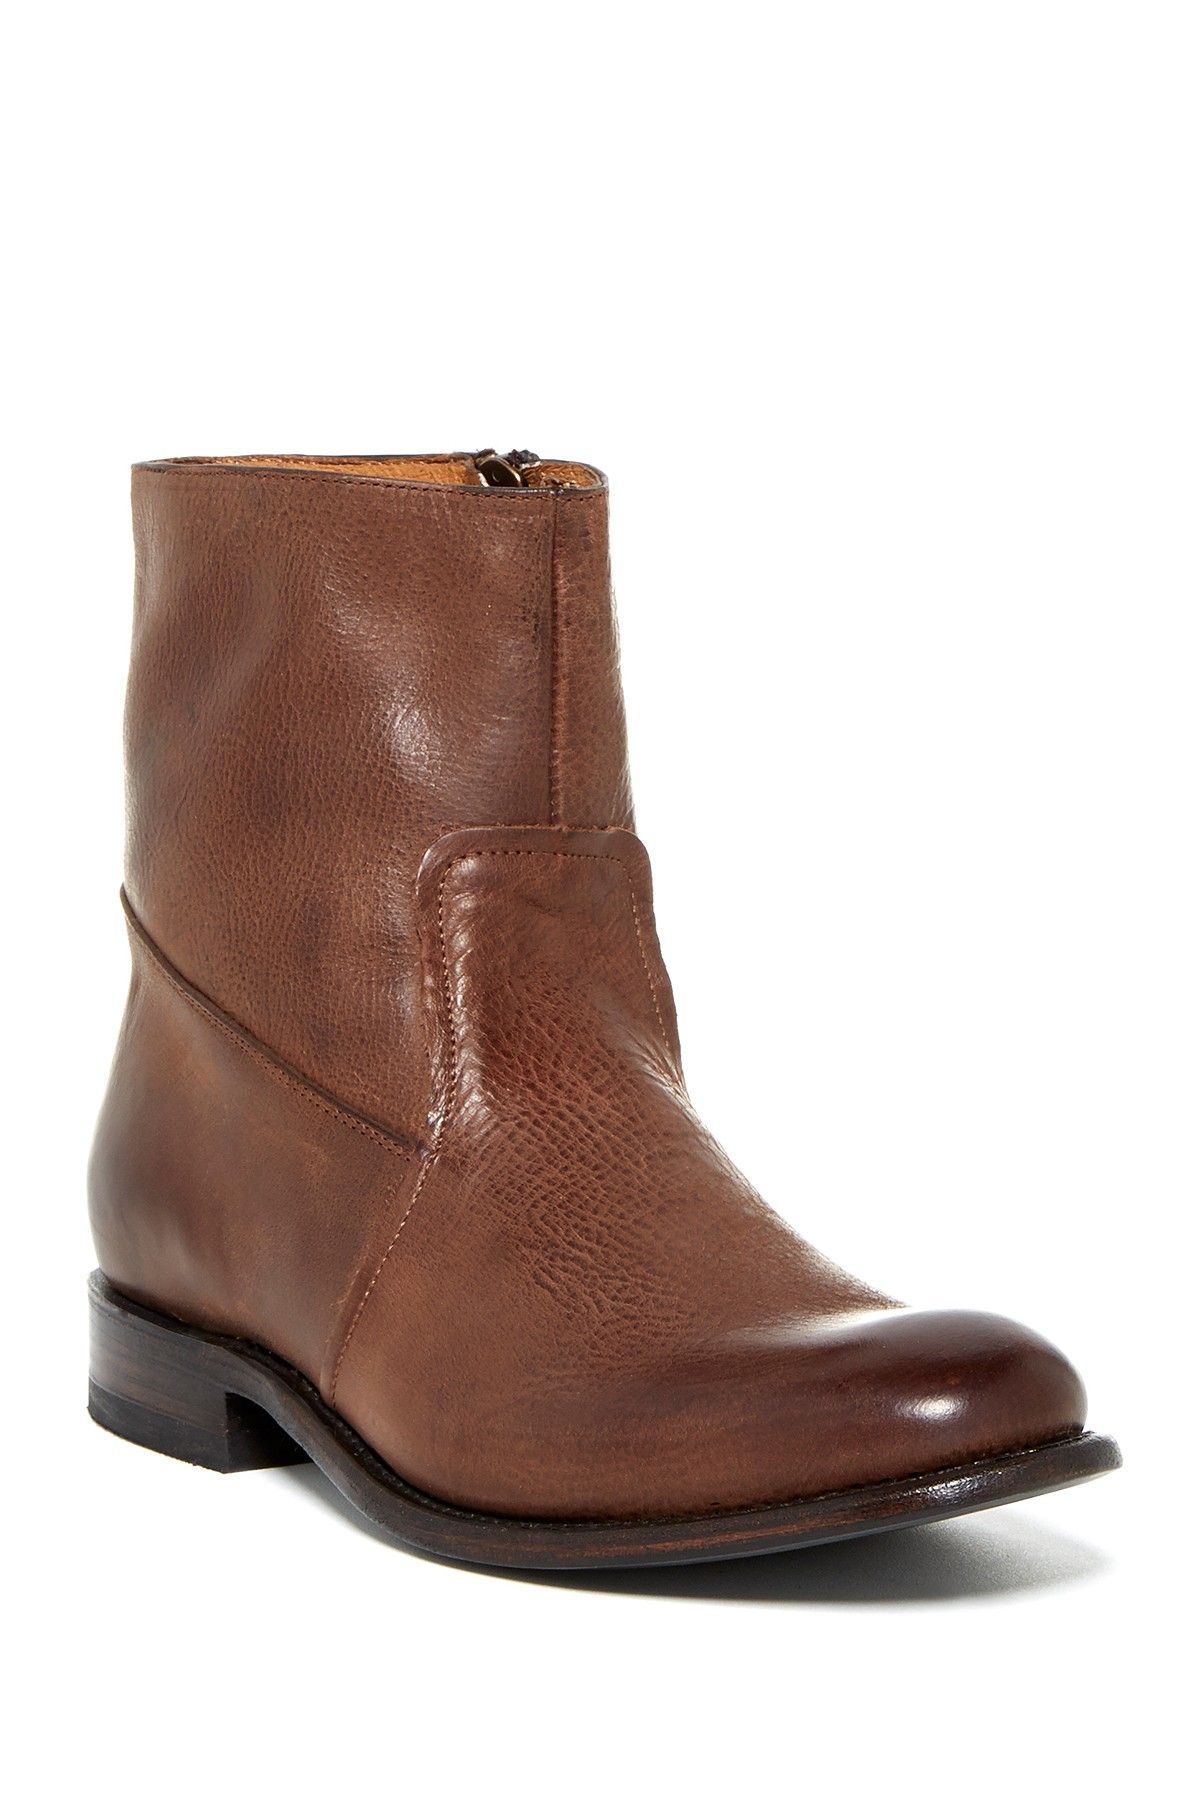 J.D. Fisk Dale Boot by J.D. Fisk on @nordstrom_rack